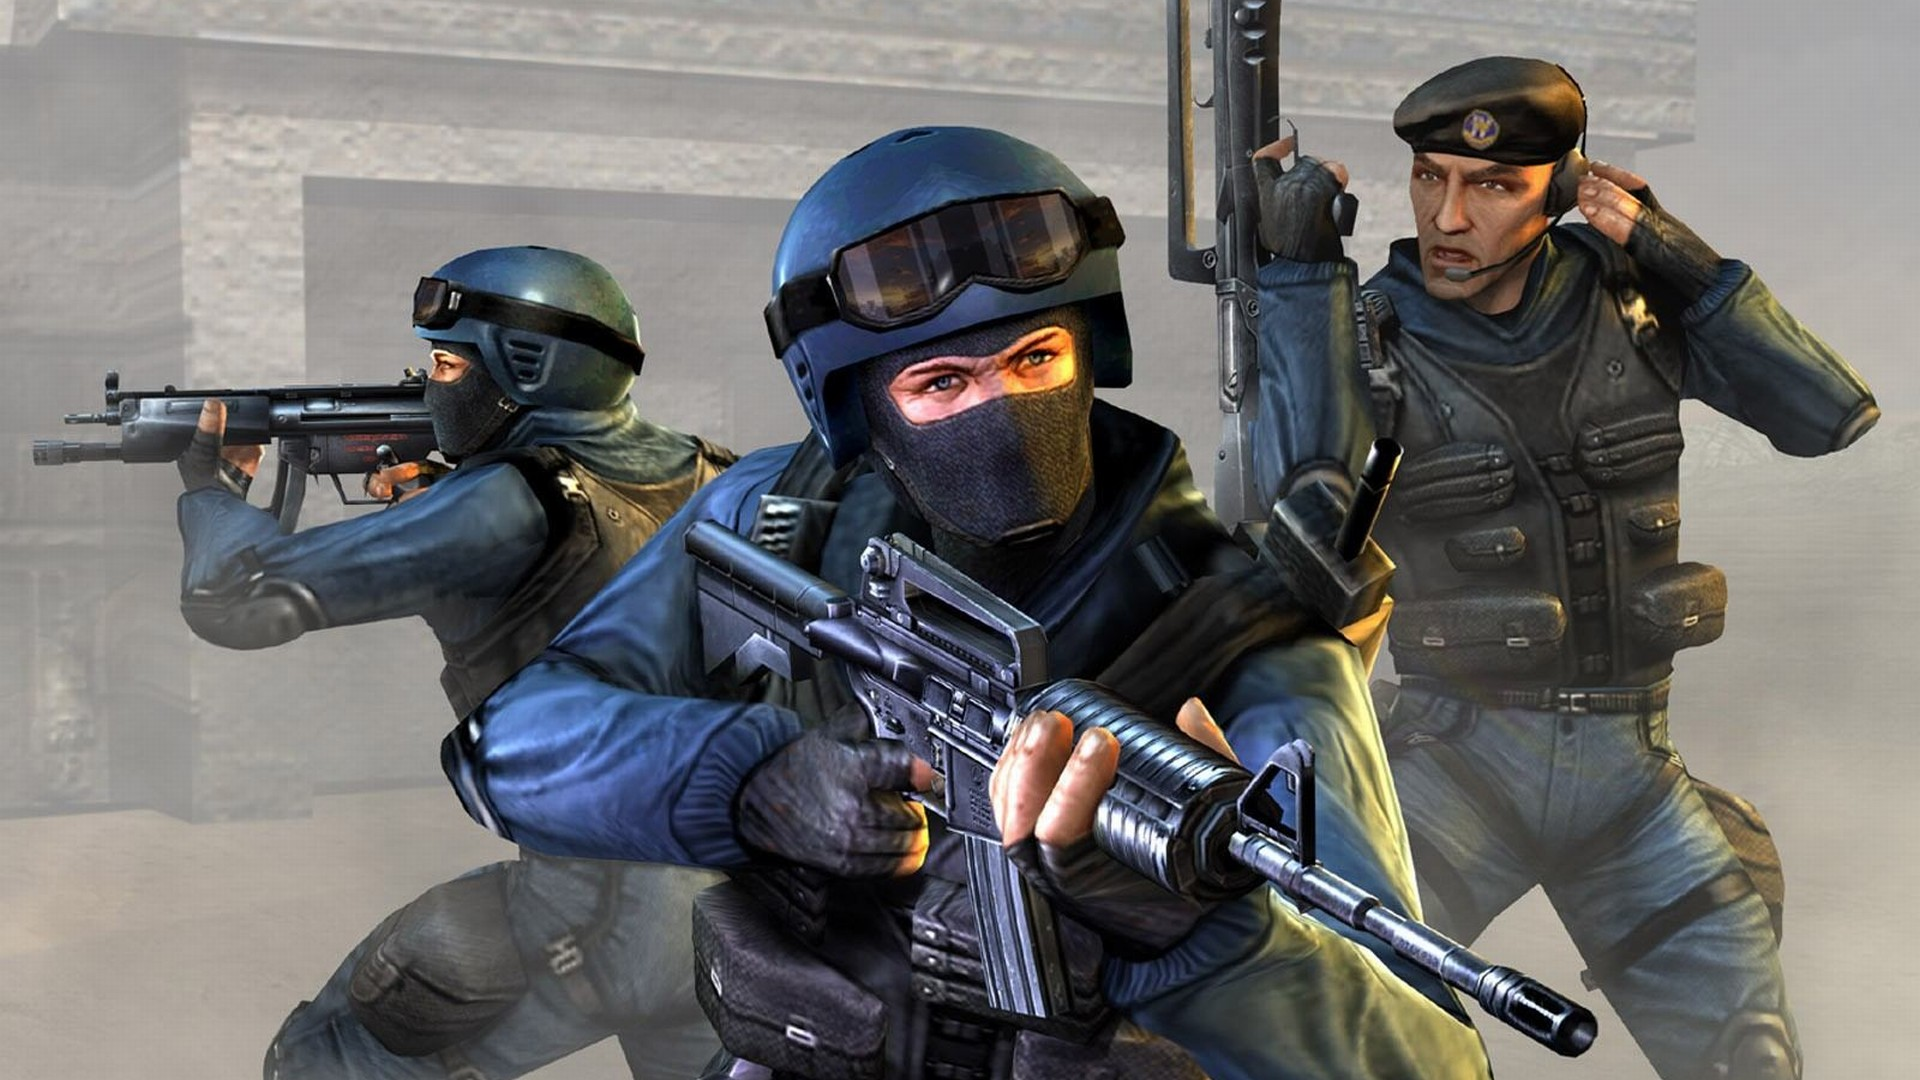 Counter Strike Hd Wallpaper Background Image 1920x1080 Id